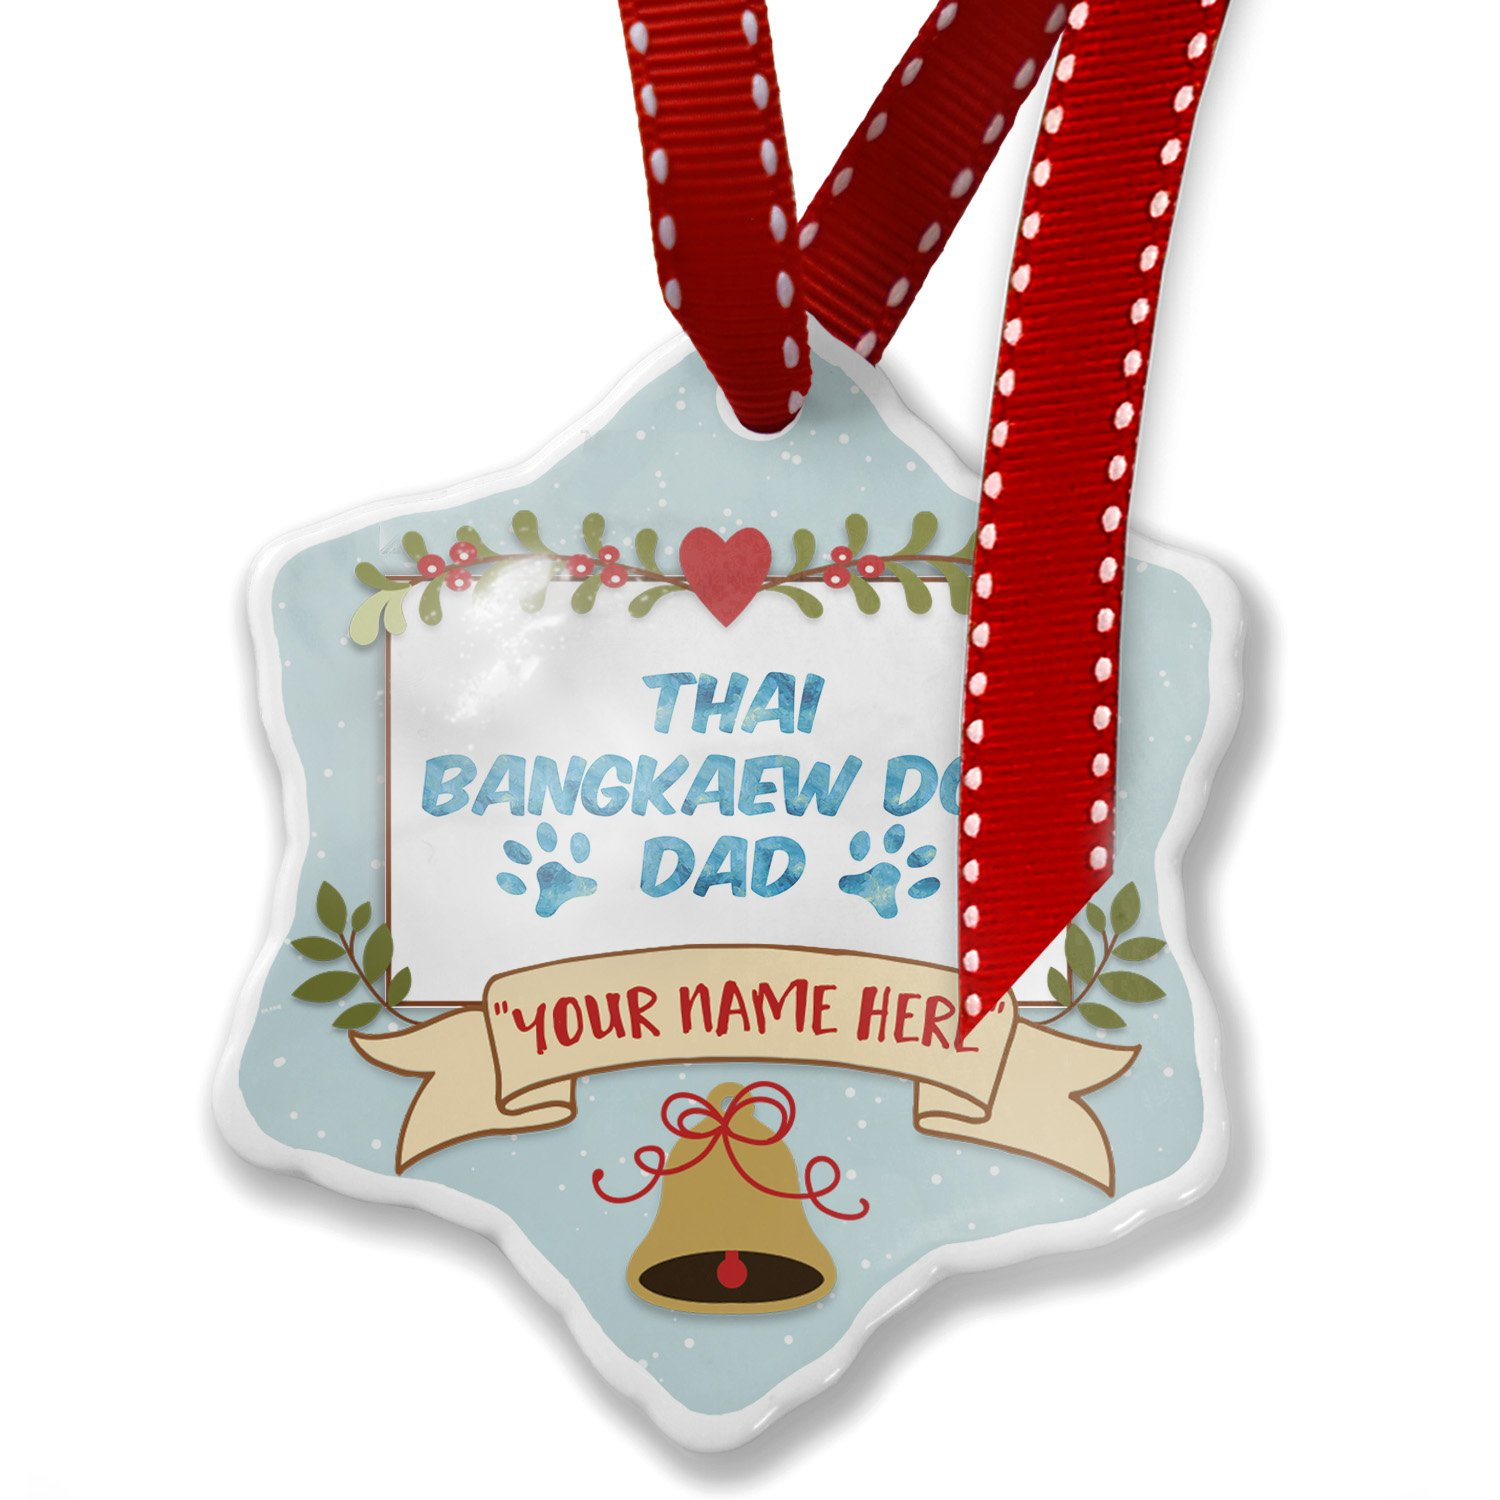 Add Your Own Custom Name, Dog & Cat Dad Thai Bangkaew Dog Christmas Ornament NEONBLOND by NEONBLOND